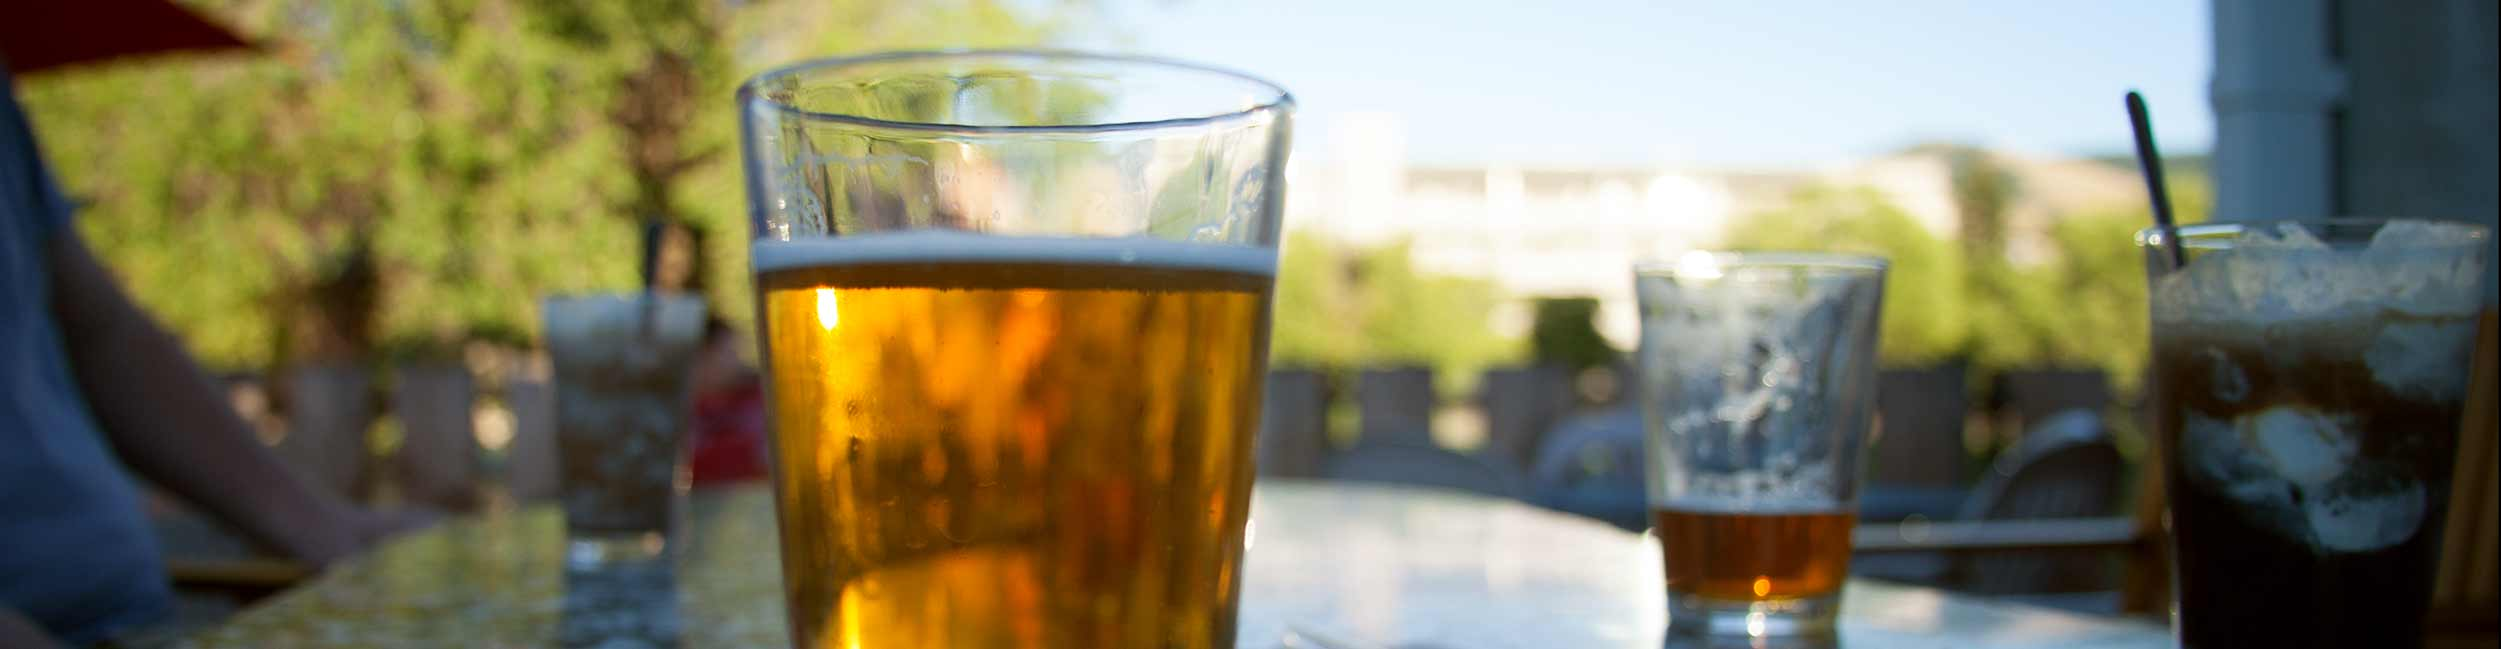 Drink Some Local Beer At A Missoula Brewery